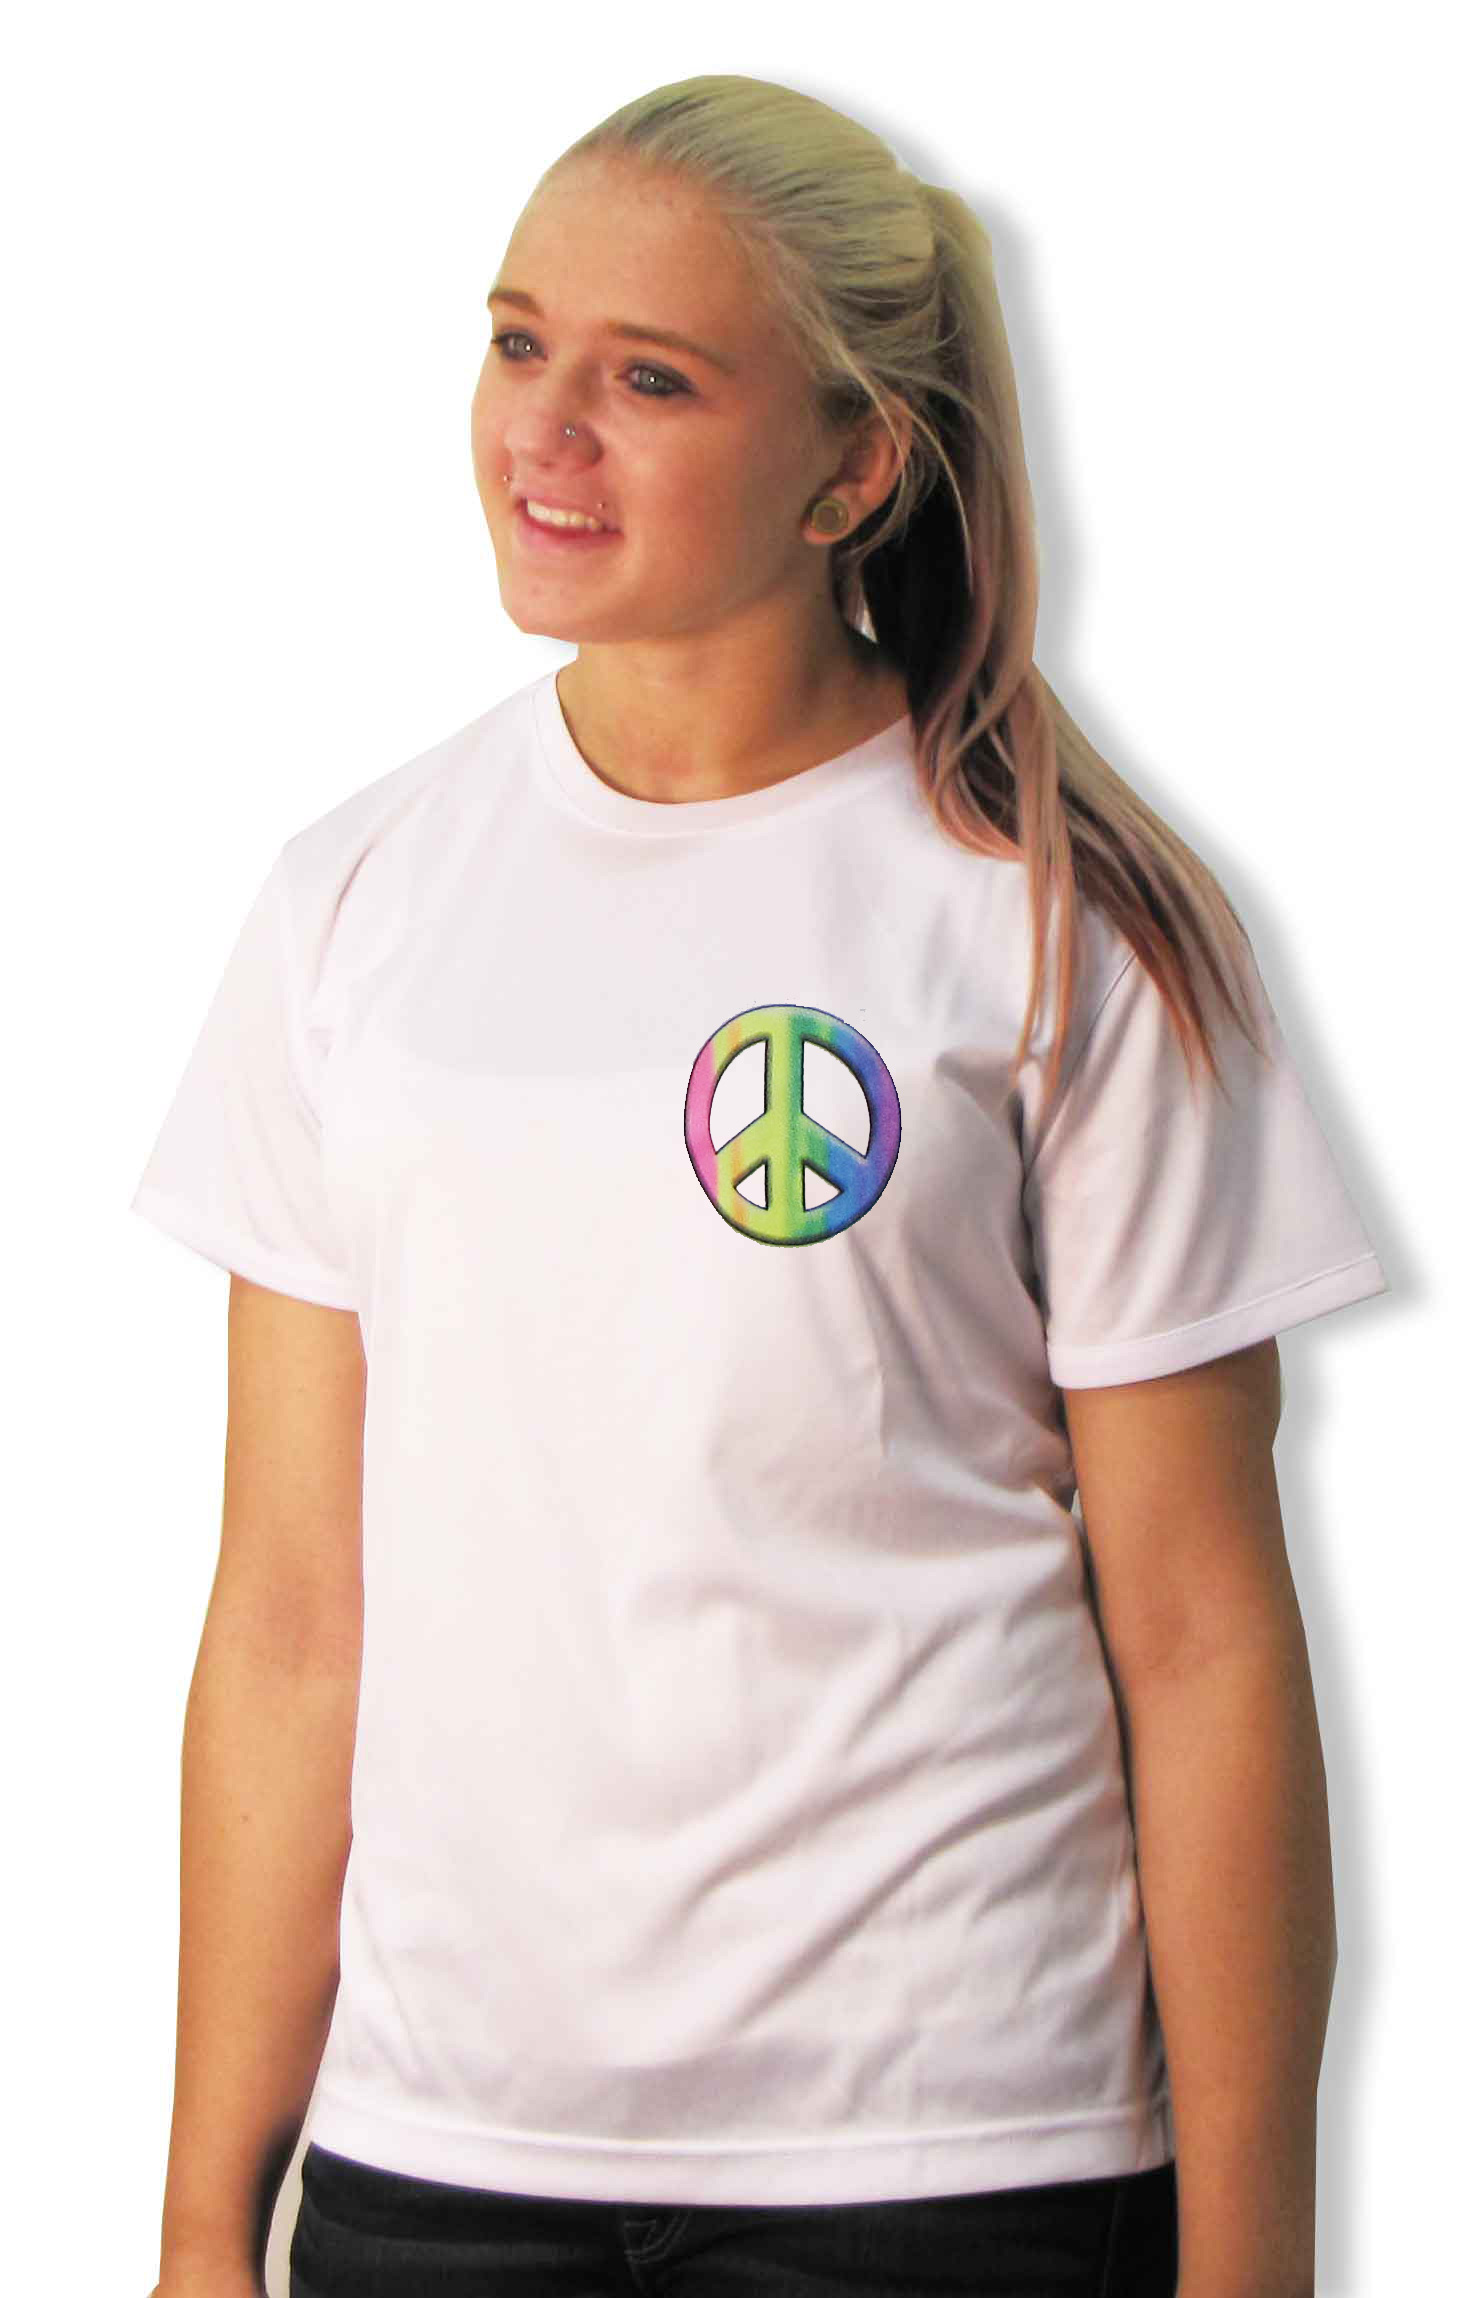 Peace Sign shirt for girls and women by Code Four Athletics